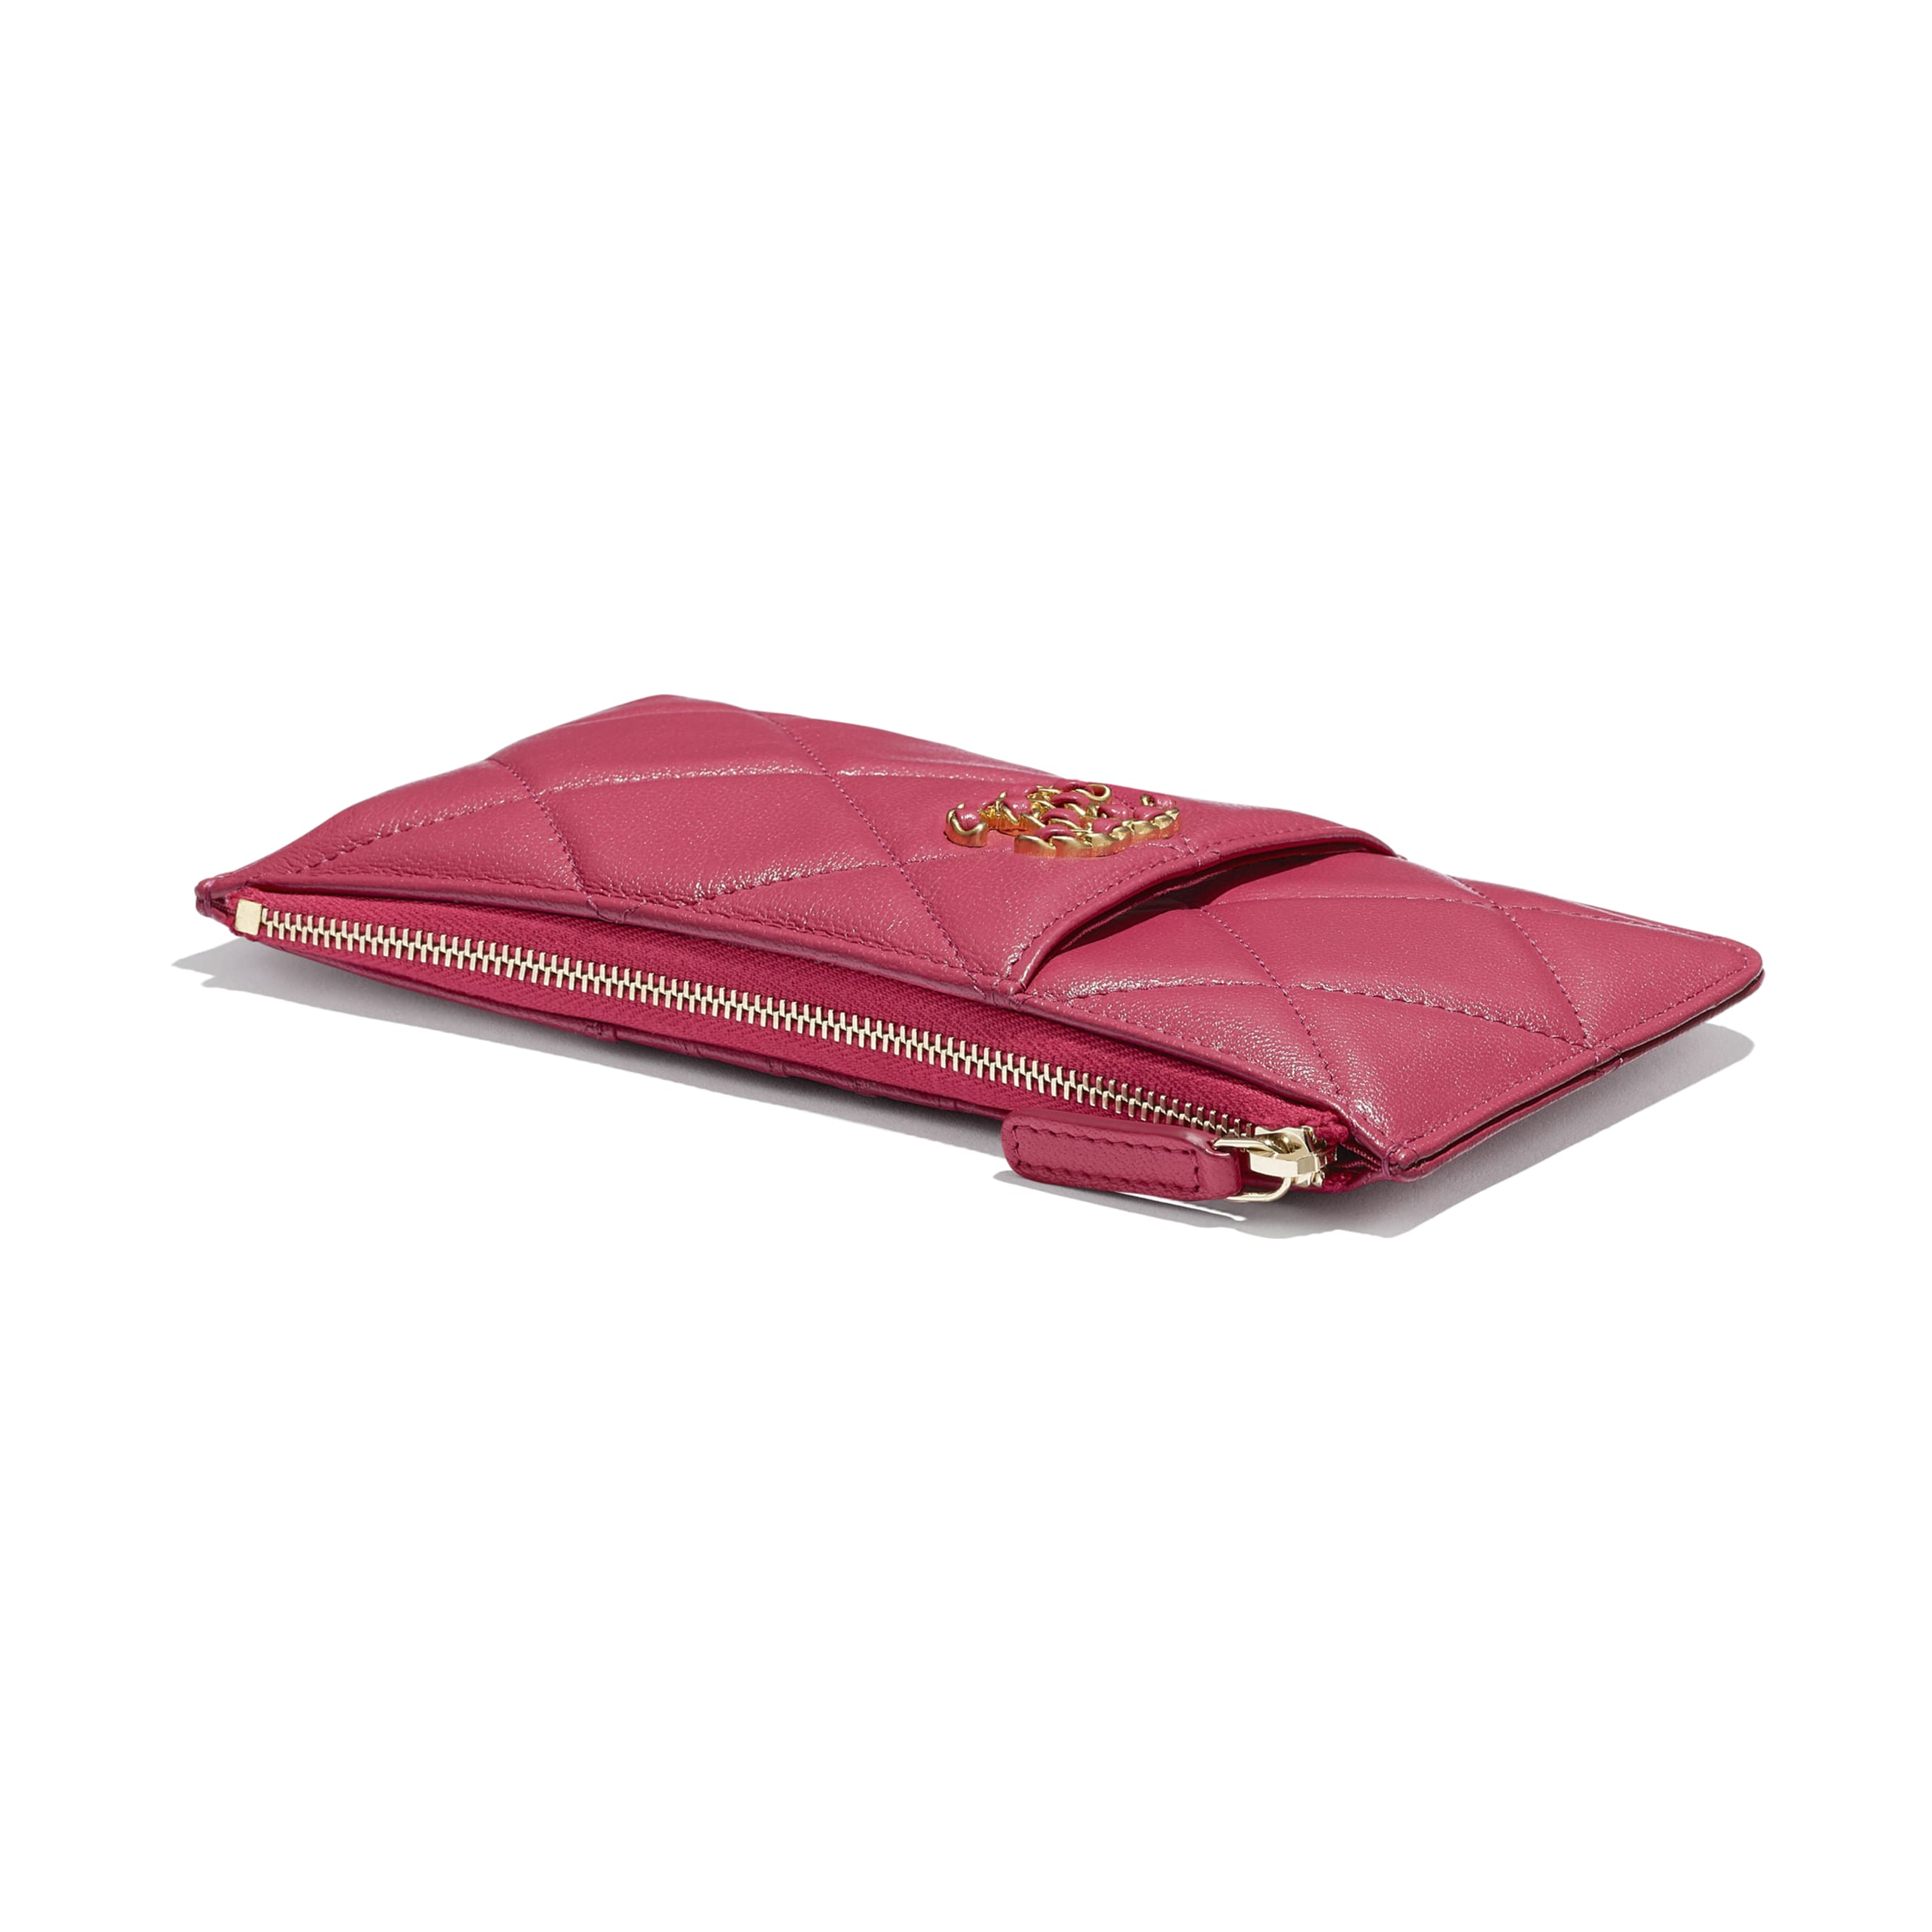 CHANEL 19 Phone & Card Holder - Dark Pink - Lambskin, Gold-Tone, Silver-Tone & Ruthenium-Finish Metal - CHANEL - Extra view - see standard sized version